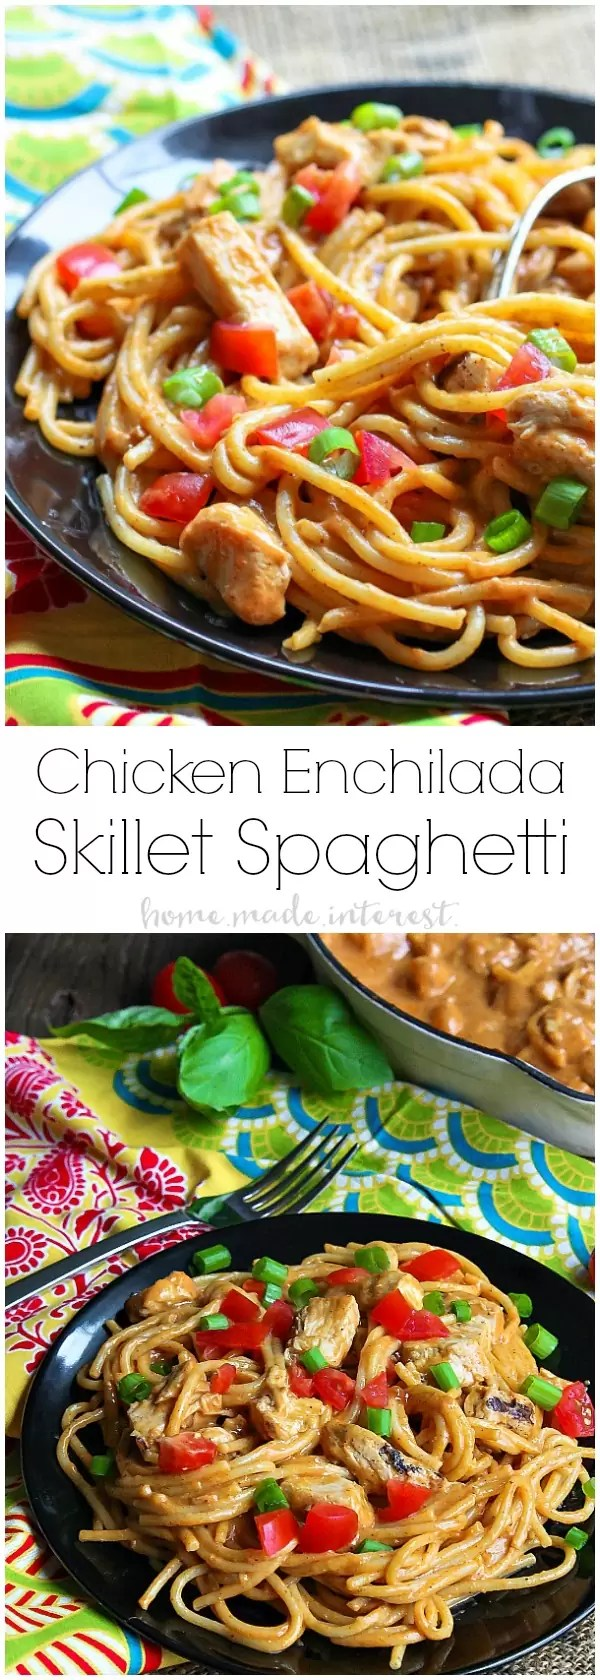 Chicken Enchilada Skillet Spaghetti   If you're looking for an easy skillet meal this Chicken Enchilada Skillet Spaghetti is what you need! It's an easy weeknight dinner recipe that kids and adults will love. Creamy enchilada sauce coating delicious chicken and spaghetti noodles topped with some of your favorite enchilada toppings. It's a chicken enchilada recipe and a spaghetti recipe all in one!